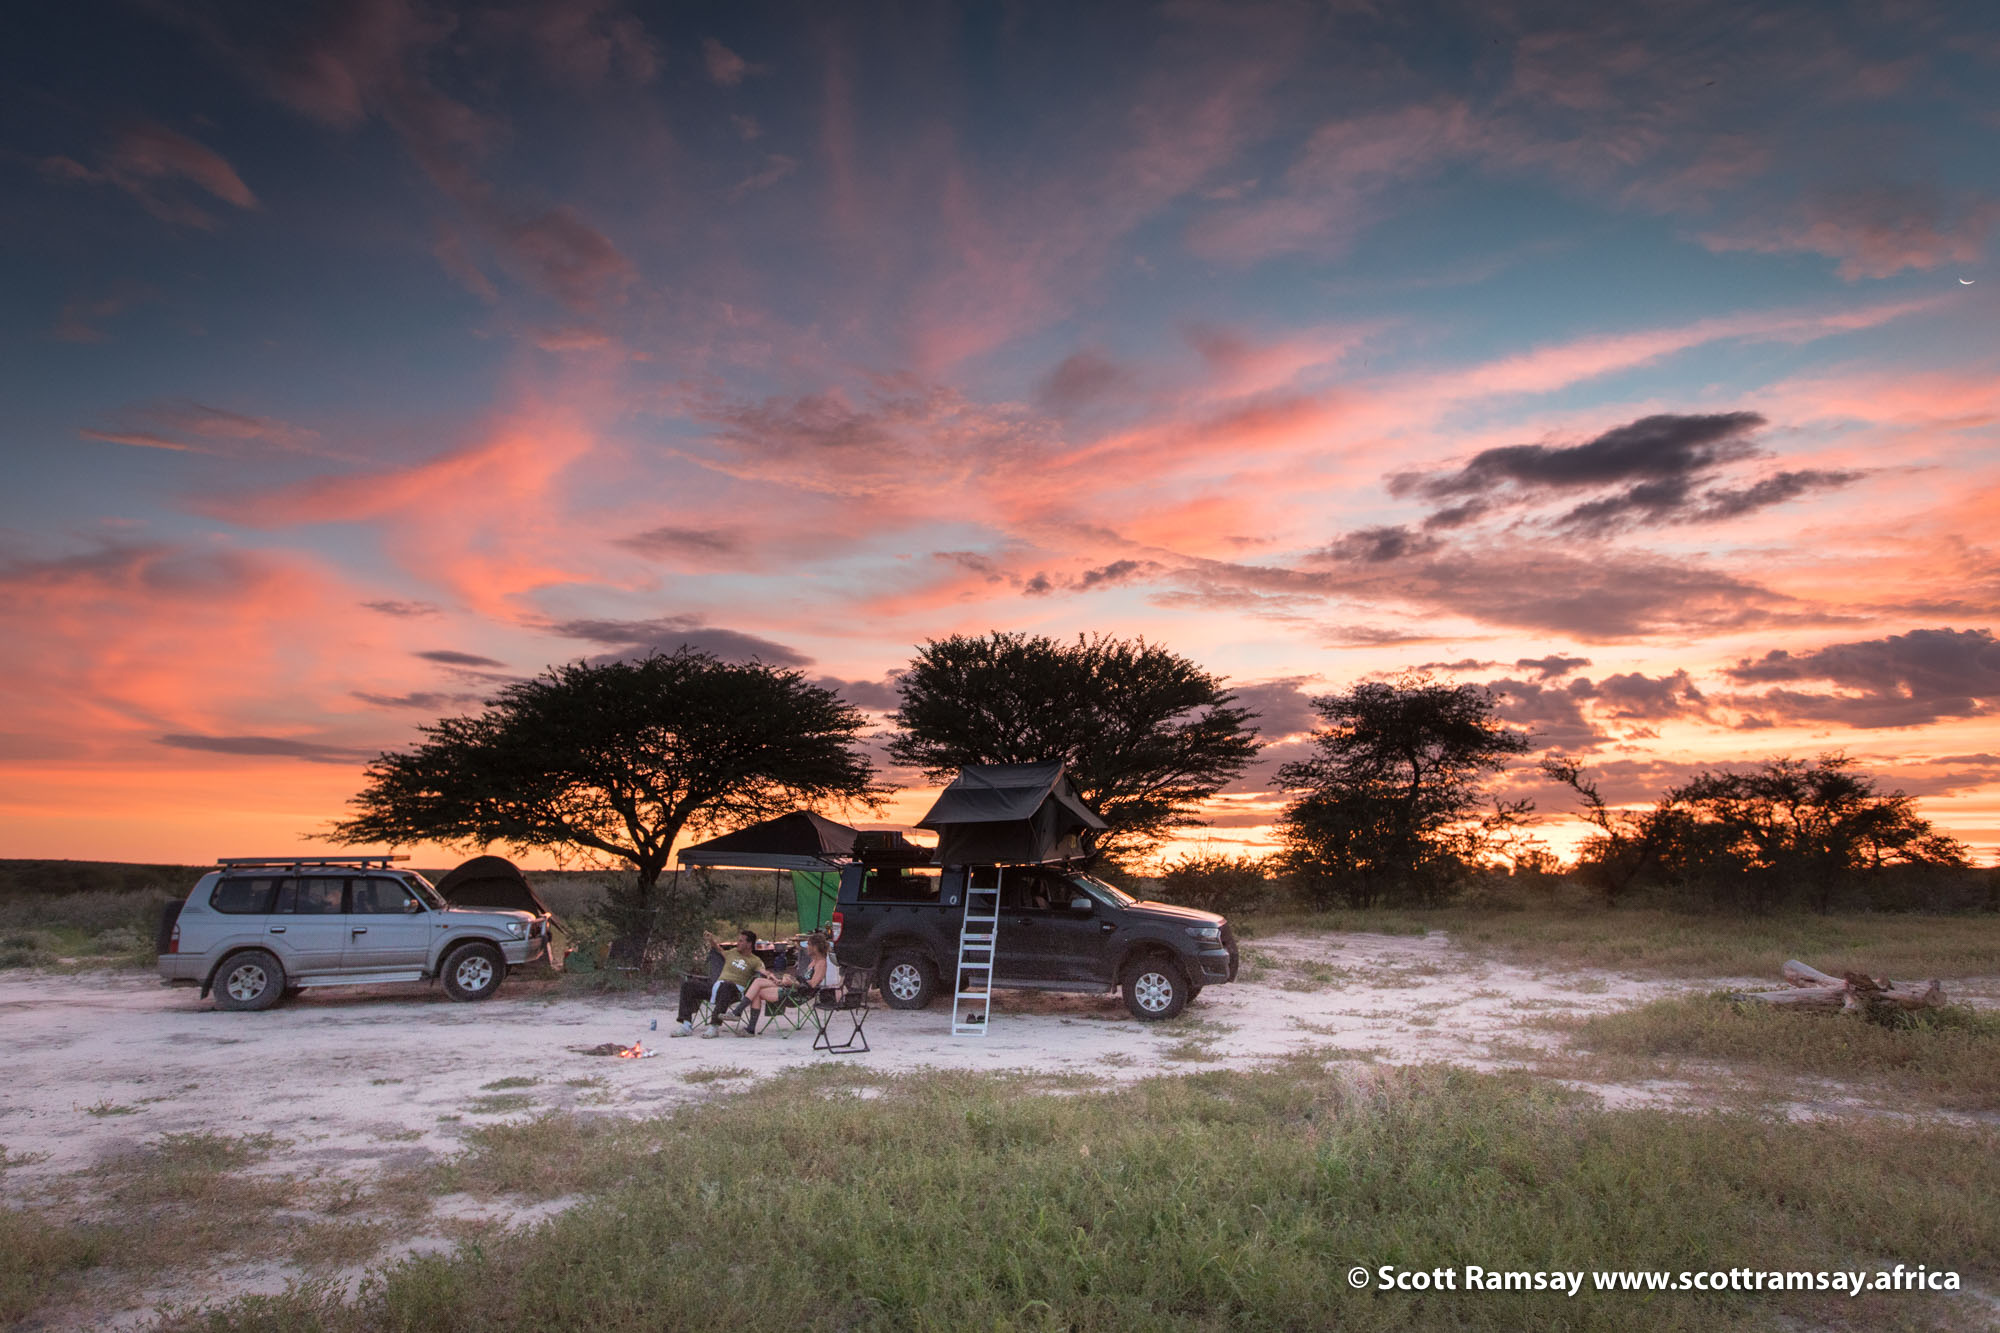 Another day comes to an end, and another astonishing sunset in the Kalahari summer. Our campsite at Passarge Pan.